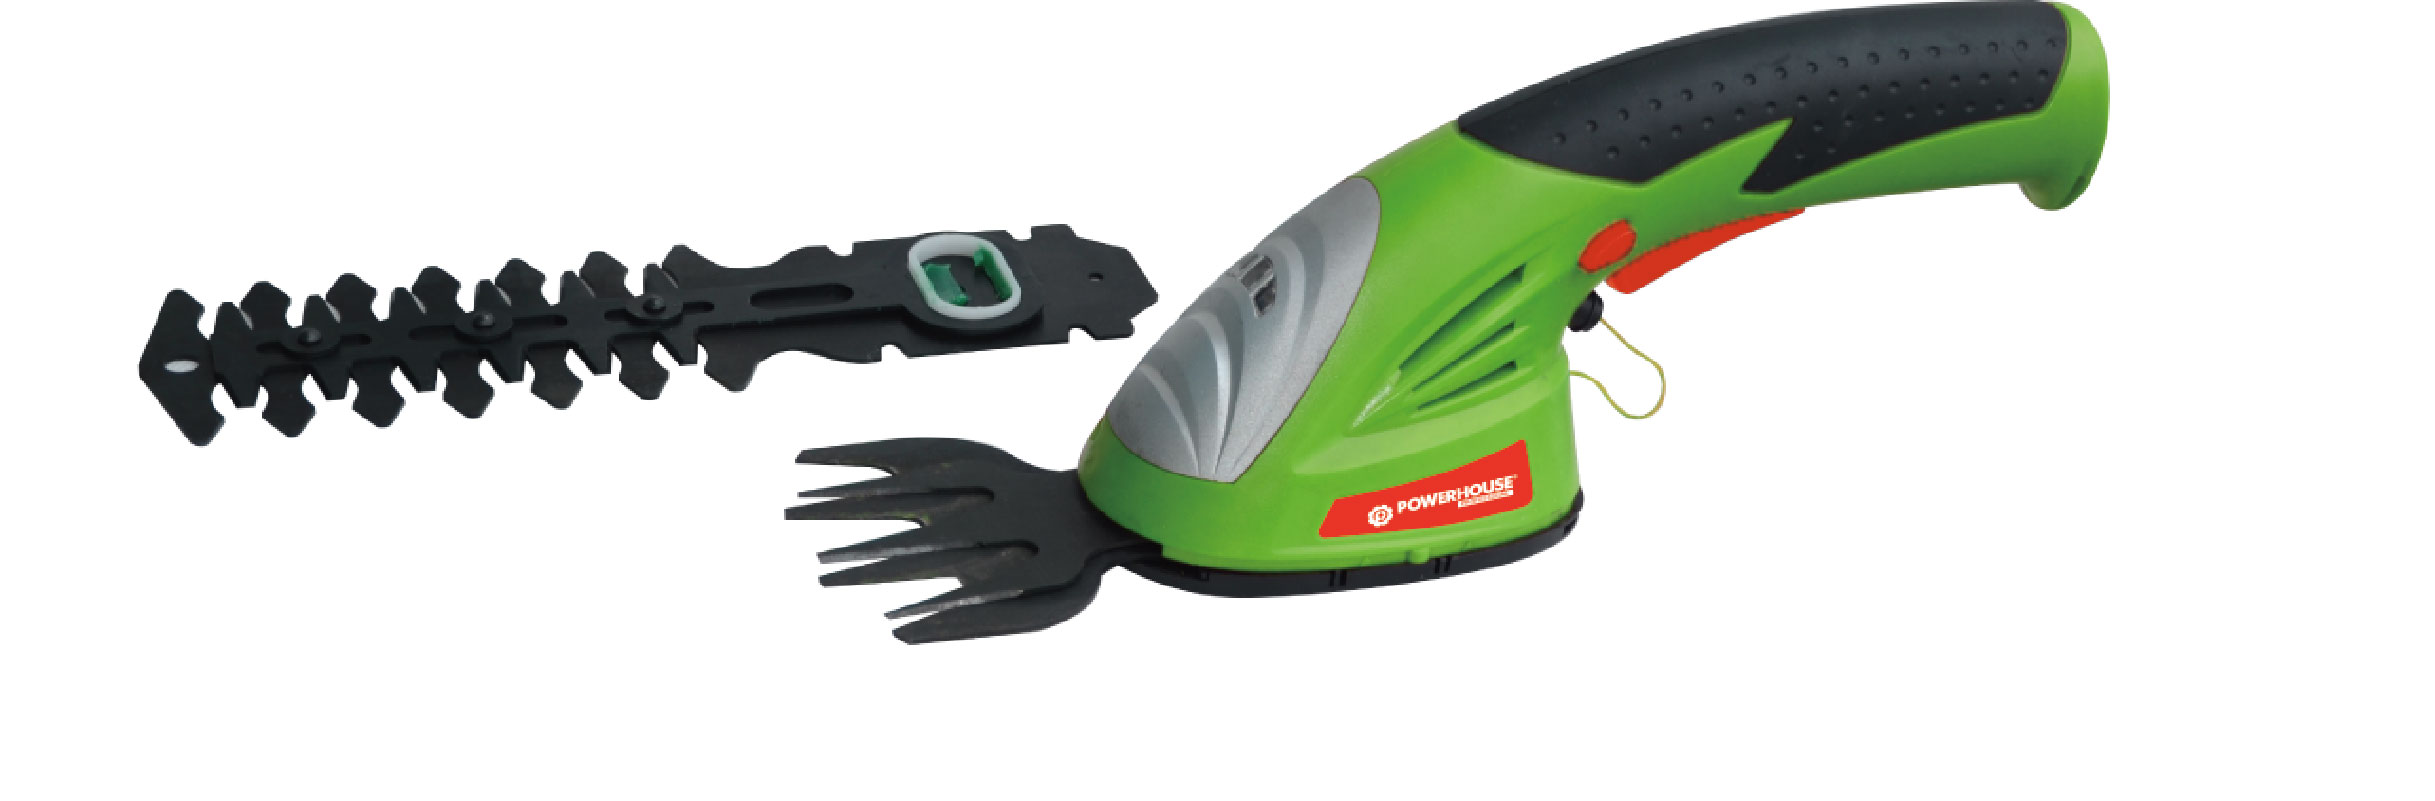 Cordless Grass Shear / Hedge Trimmer